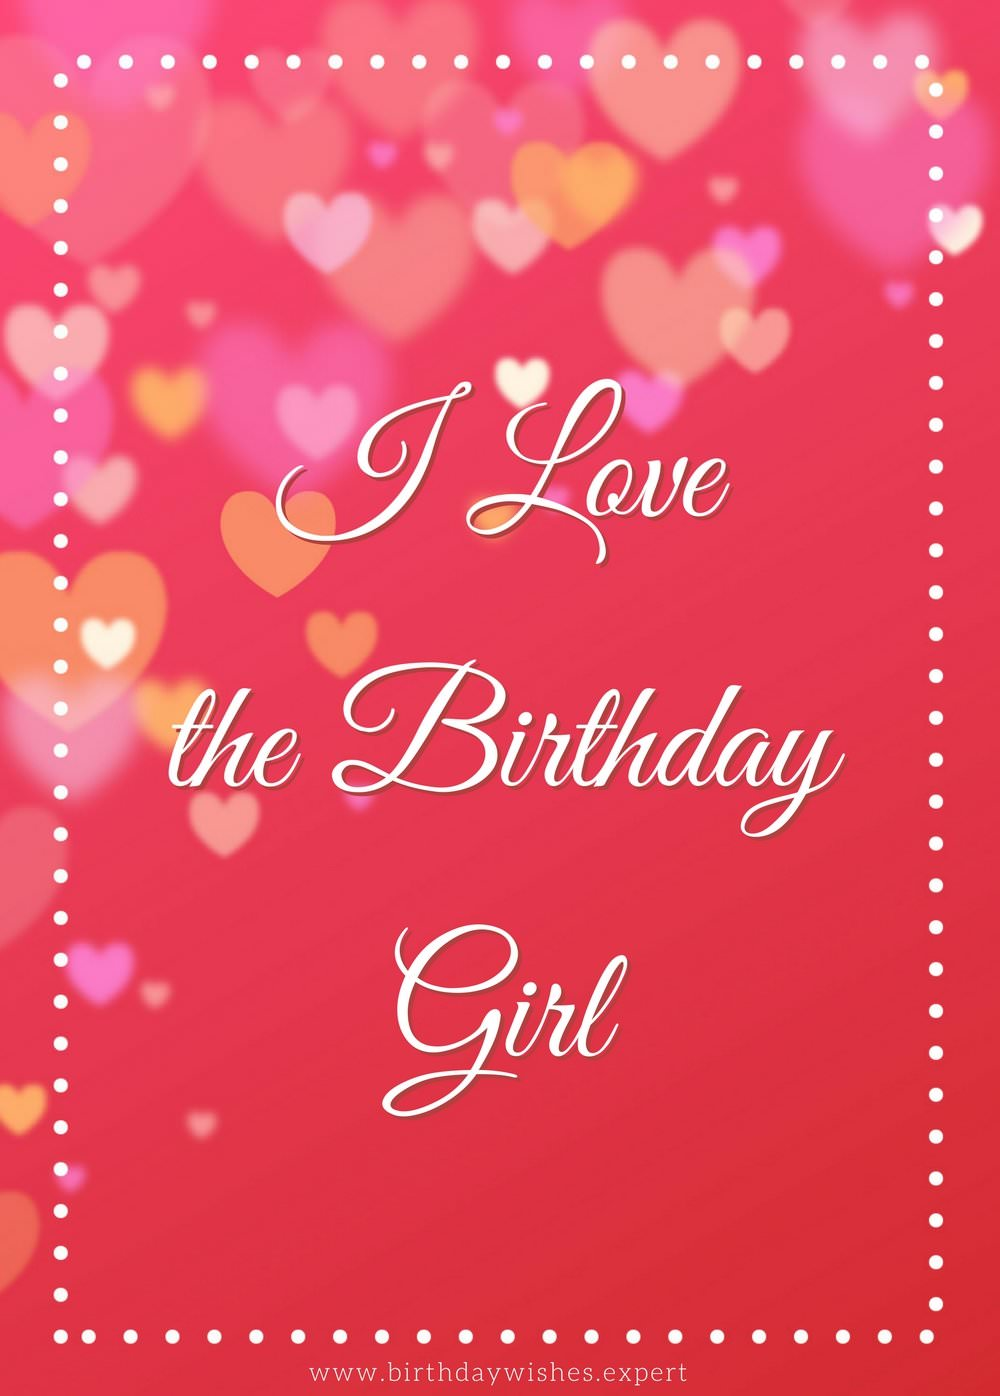 Love only romantic birthday wishes for your girlfriend i love the birthday girl kristyandbryce Image collections